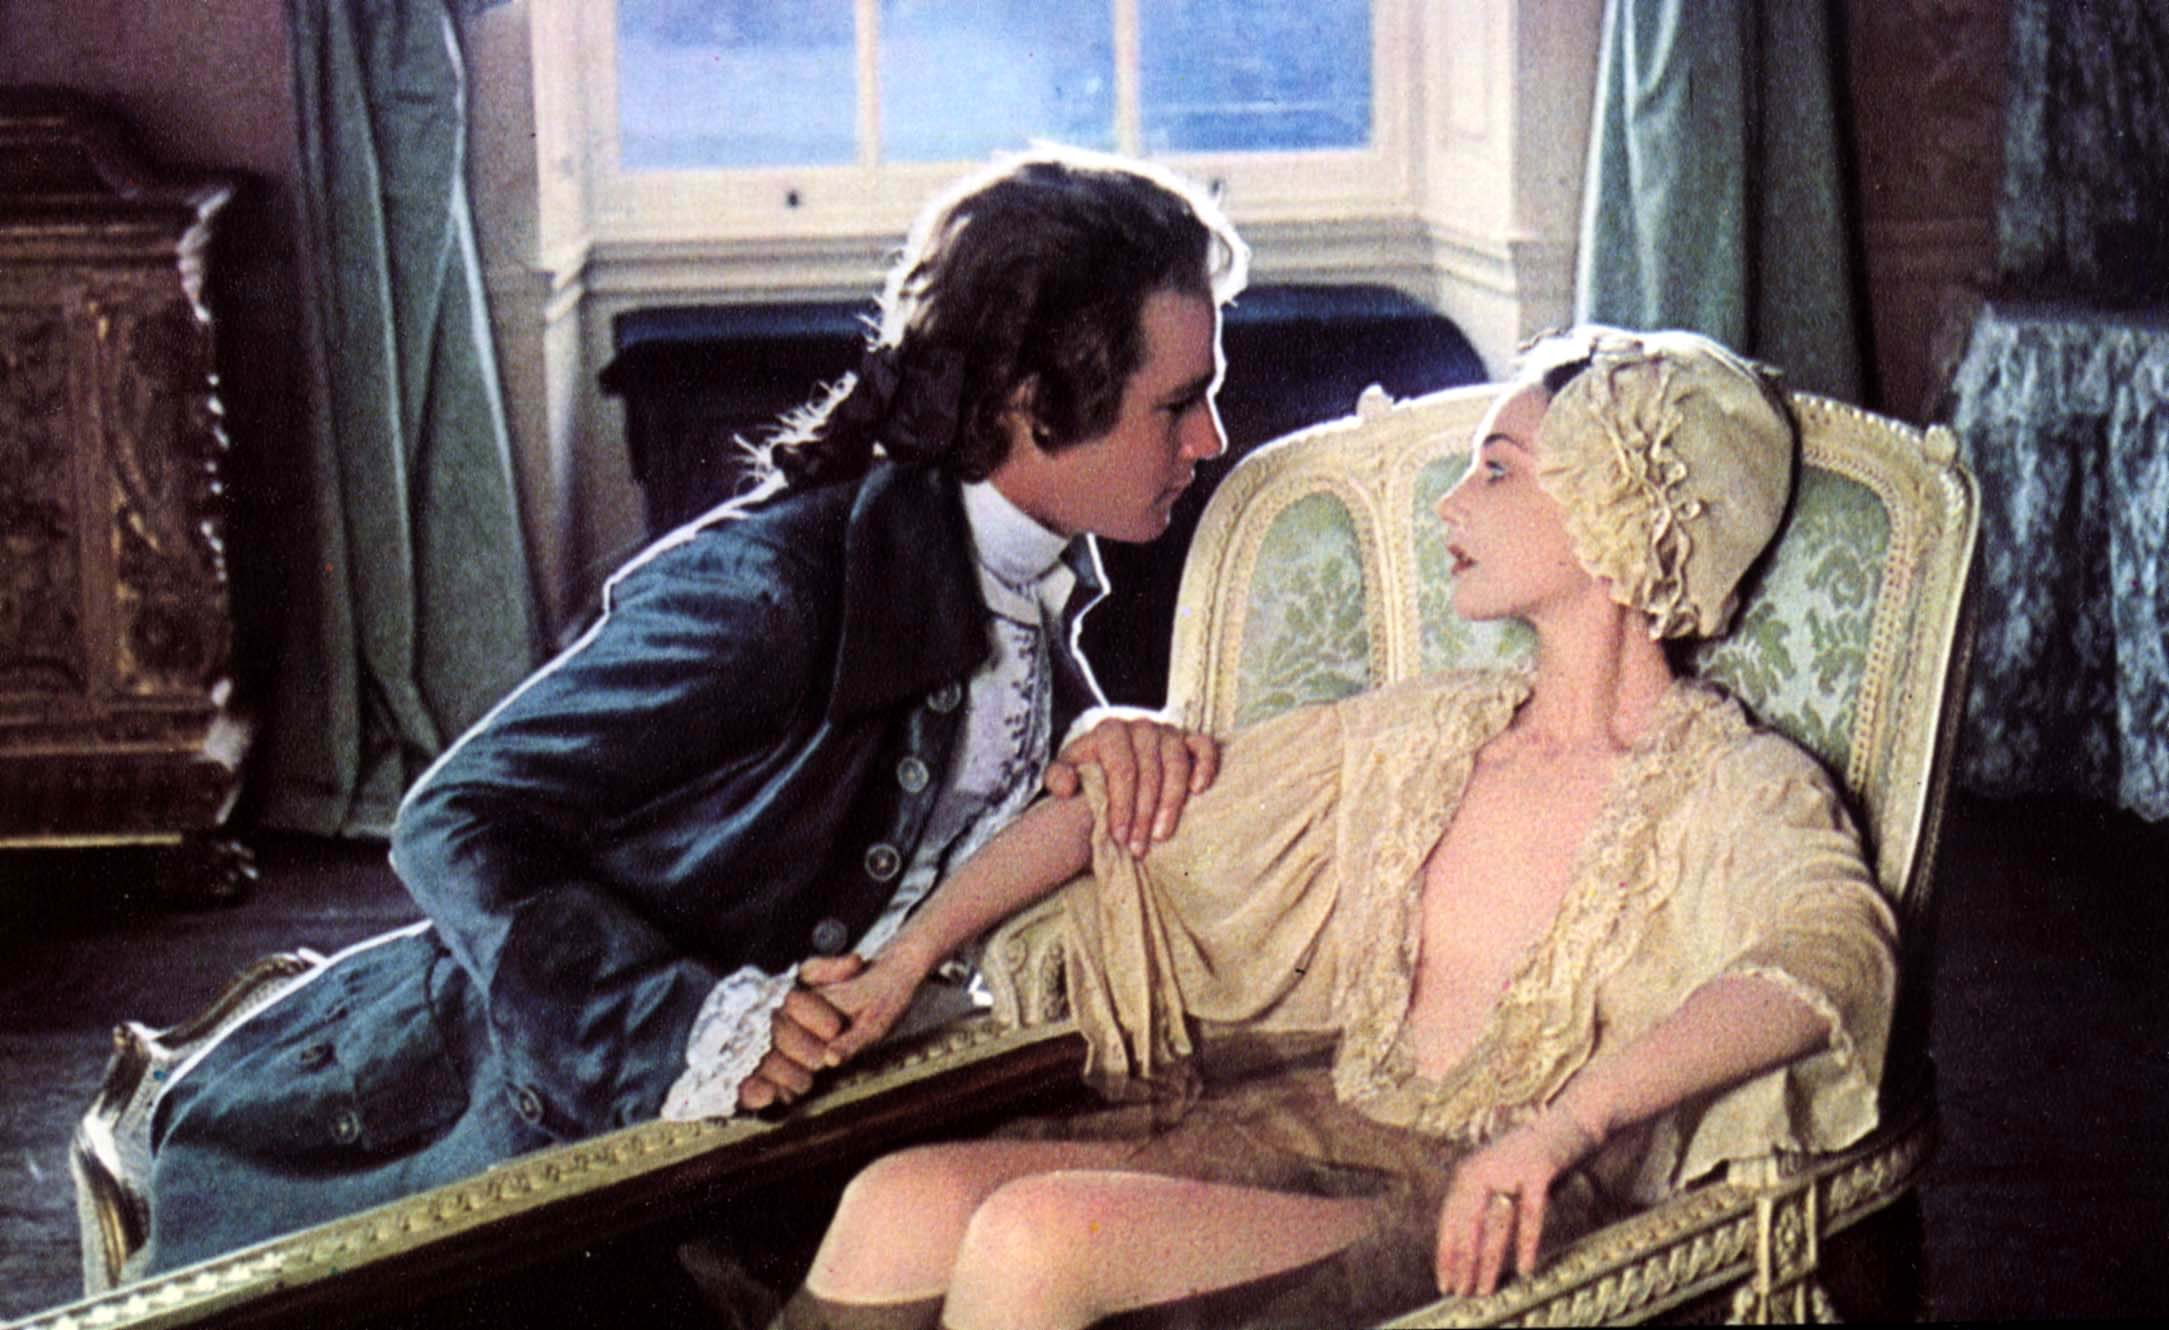 Image from Barry Lyndon